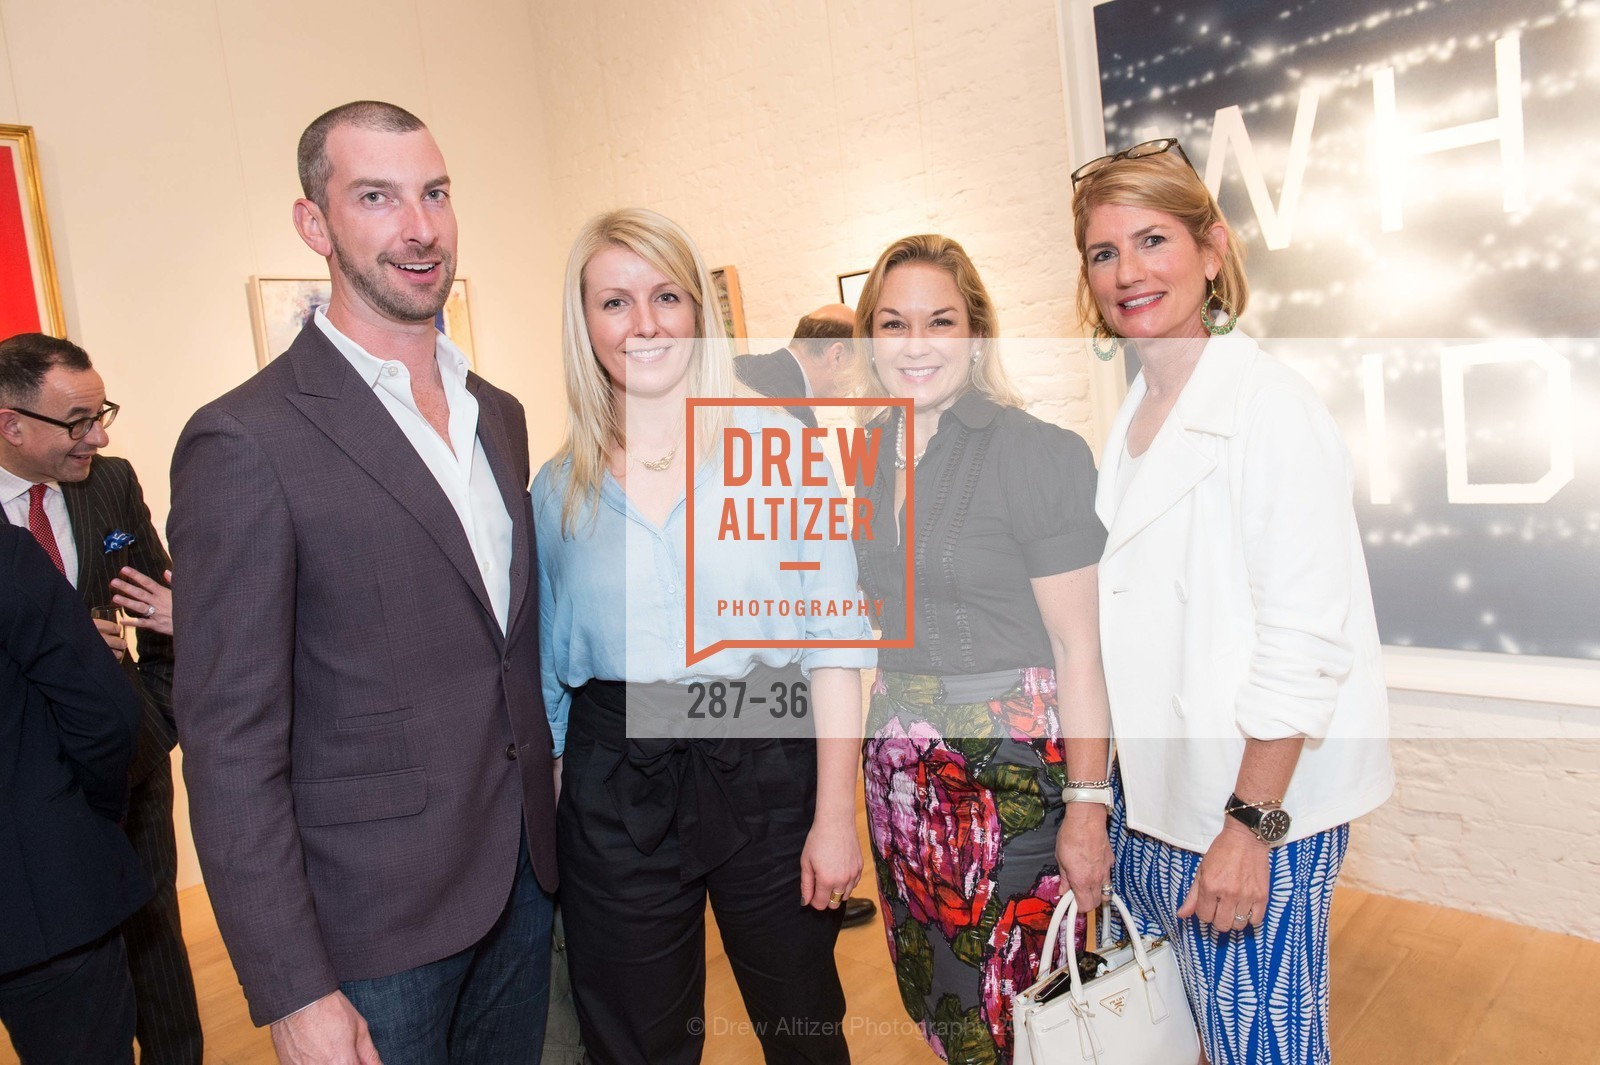 Andrew Teufel, Kira Lyons, Ana Dierkhifind, Mary Jane Dubois, Post War and Contemporary preview at Hedge Gallery , Hedge Gallery. 501 Pacific Ave, San Francisco, CA 94133, April 16th, 2015,Drew Altizer, Drew Altizer Photography, full-service agency, private events, San Francisco photographer, photographer california